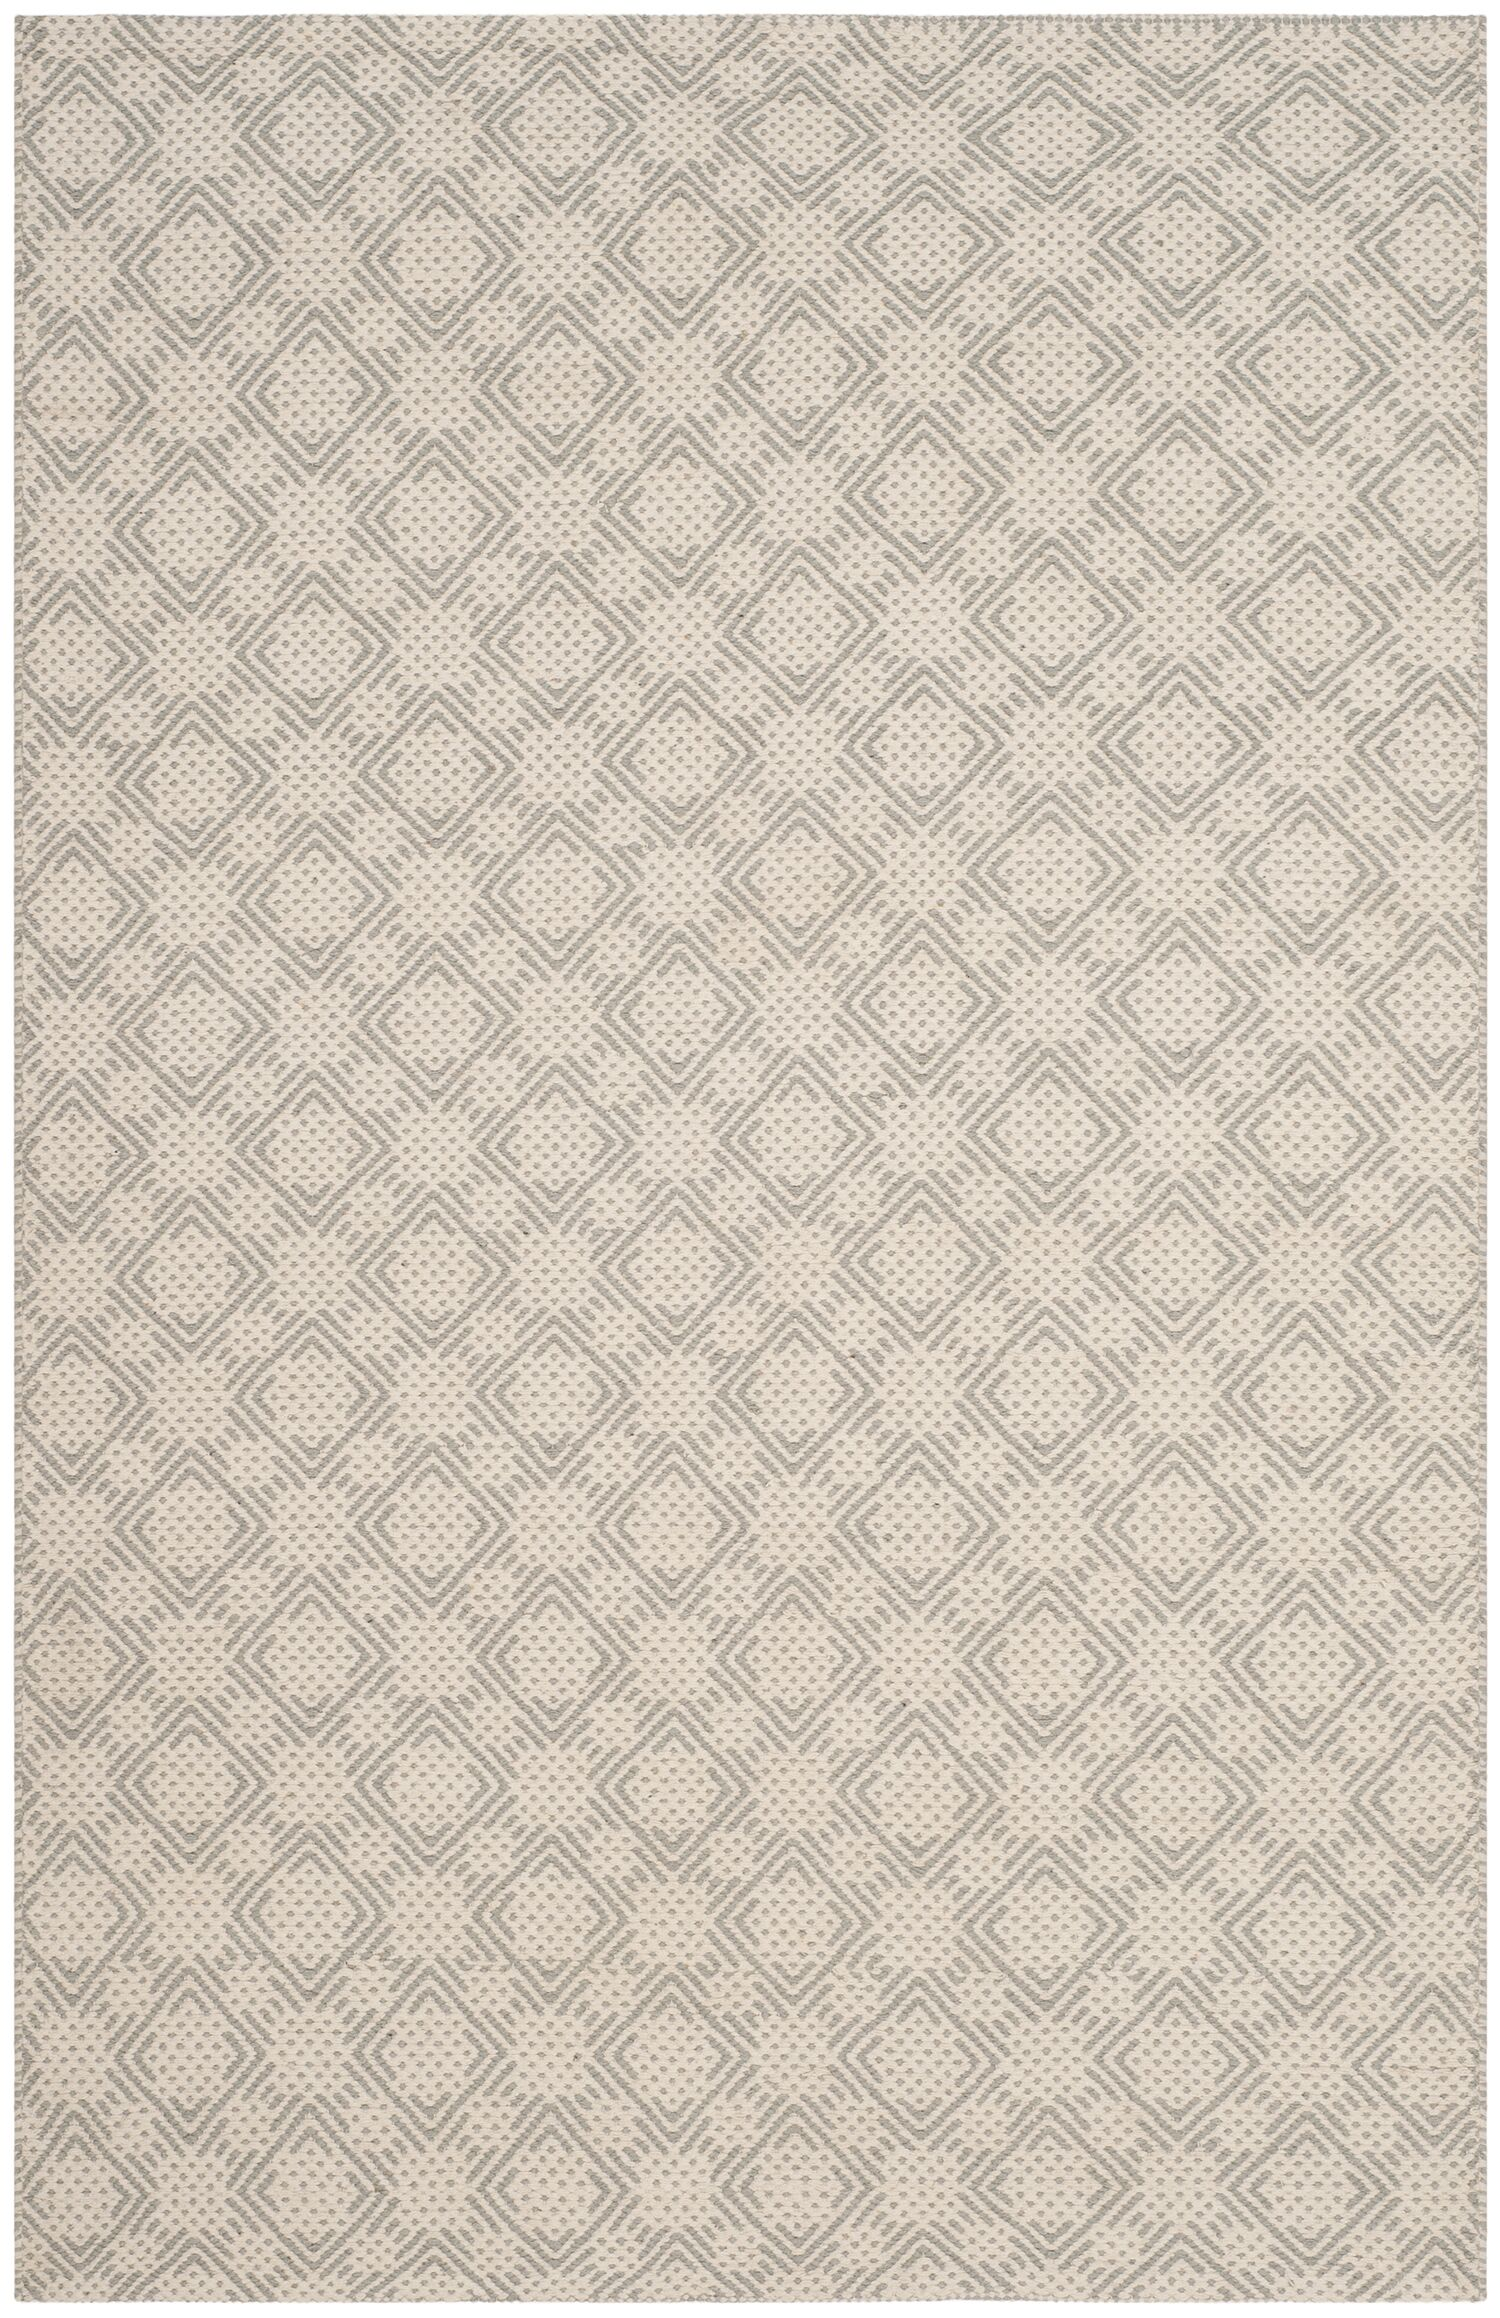 Lorain Cotton Hand-Woven Gray/Ivory Area Rug Rug Size: Rectangle 4' x 6'